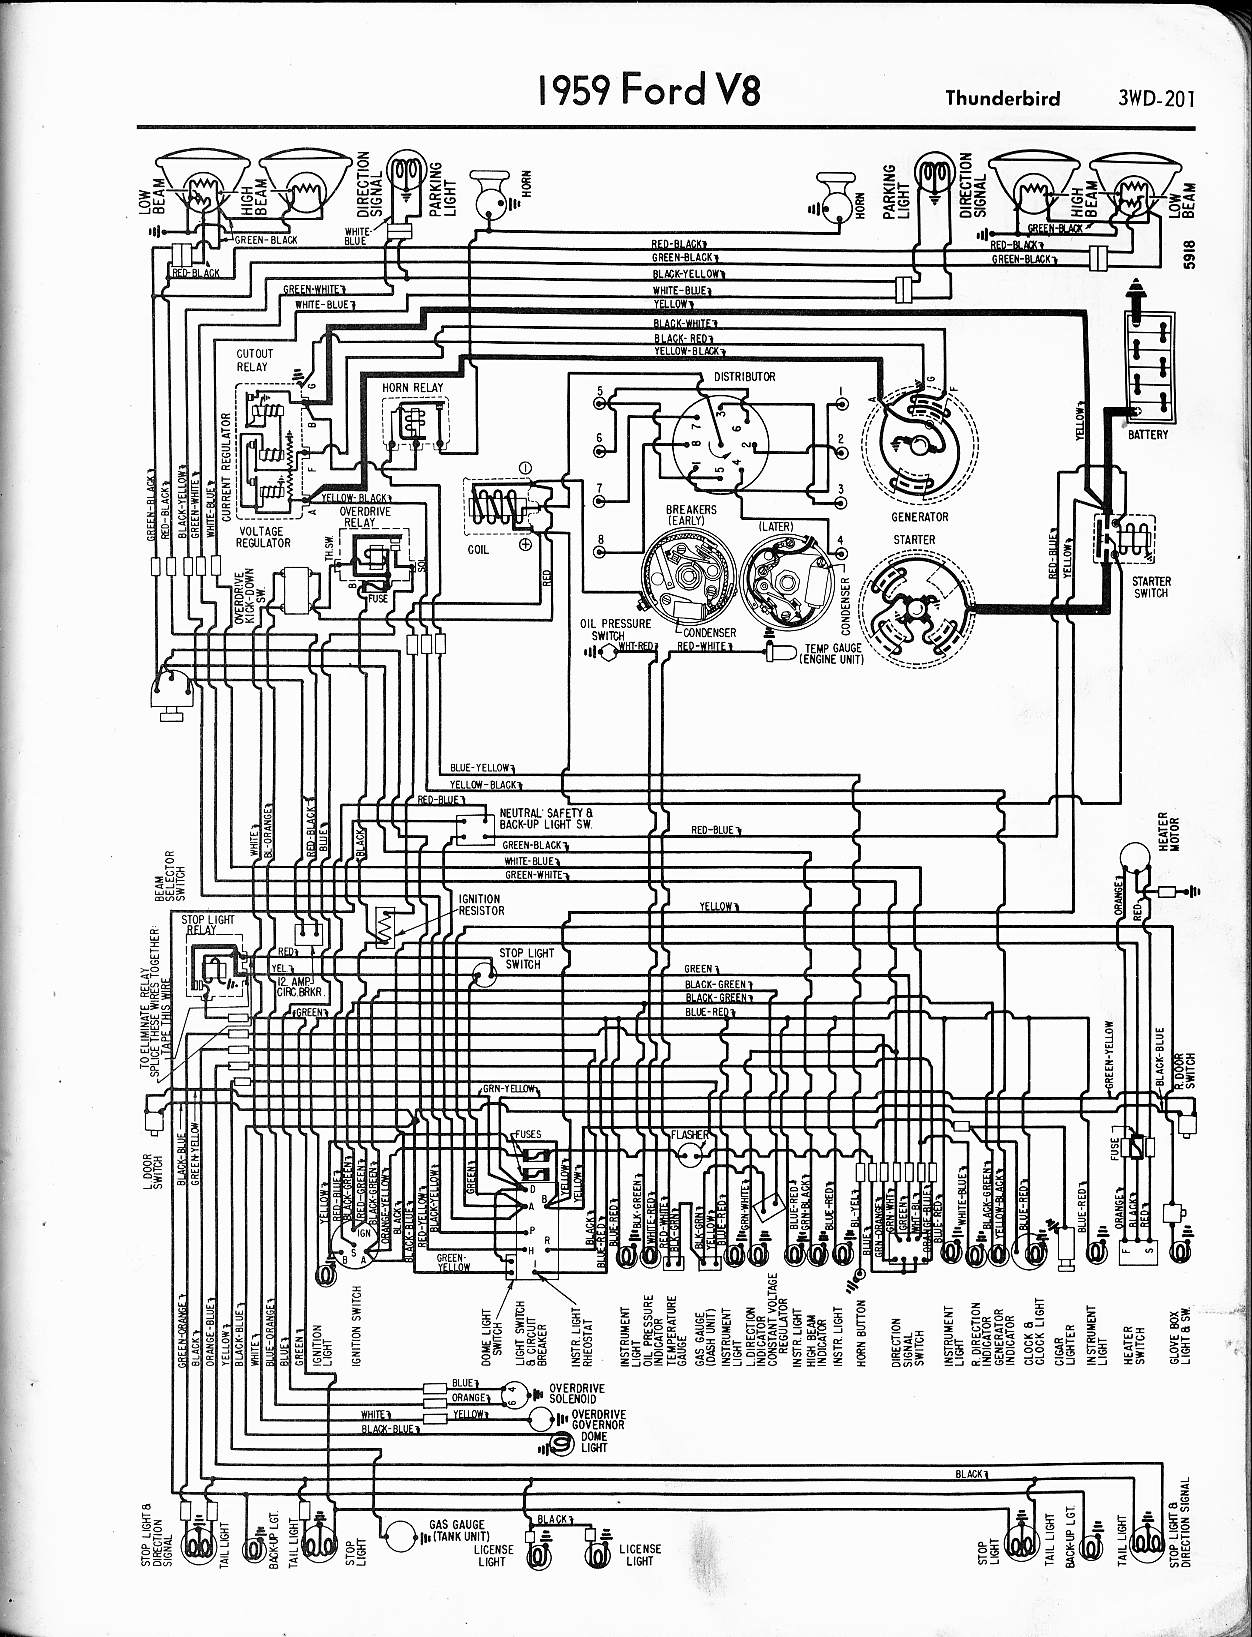 MWire5765 201 57 65 ford wiring diagrams ford truck wiring schematics at bayanpartner.co